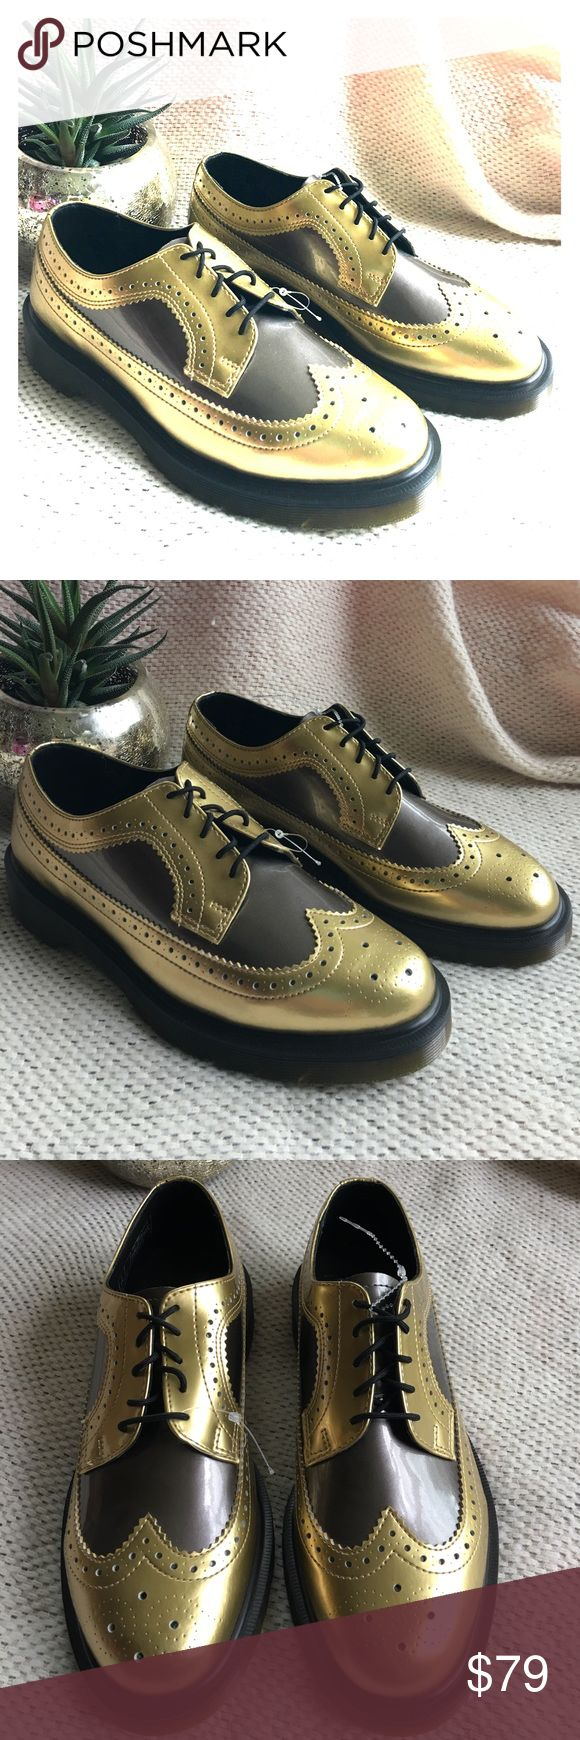 NWOT Dr. Martens Gold Air Wair Oxfords New without tag; store overstock - plastic tag attachments still attached; Dr. Martens Air Wair Gold Oxfords (if you go onto their site the size chart states that the EU 41 is equal to a US 9 Dr. Martens Shoes